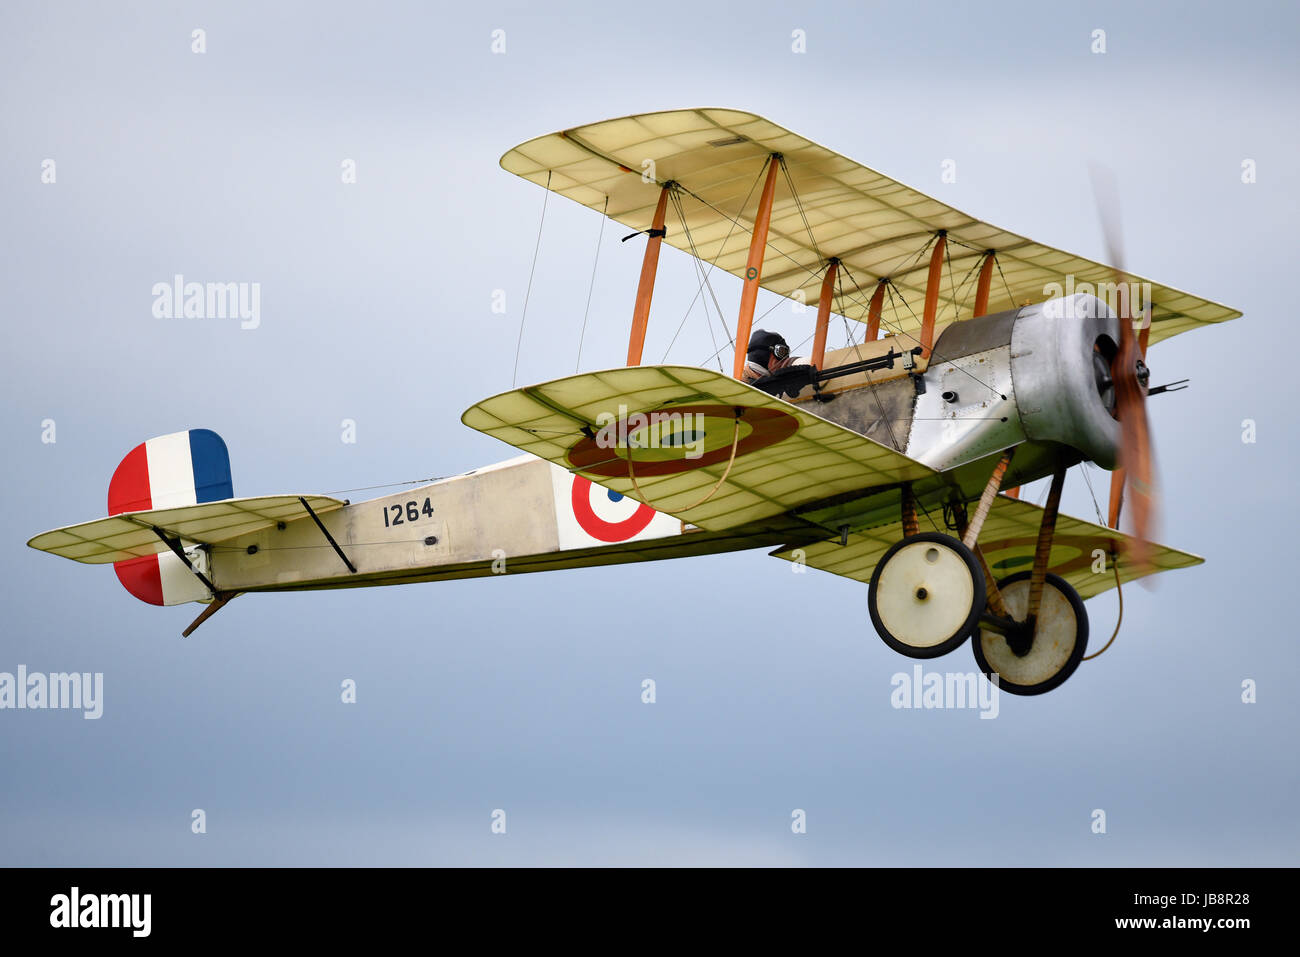 bristol-scout-1264-at-an-airshow-at-shuttleworth-aerodrome-space-for-JB8R28.jpg